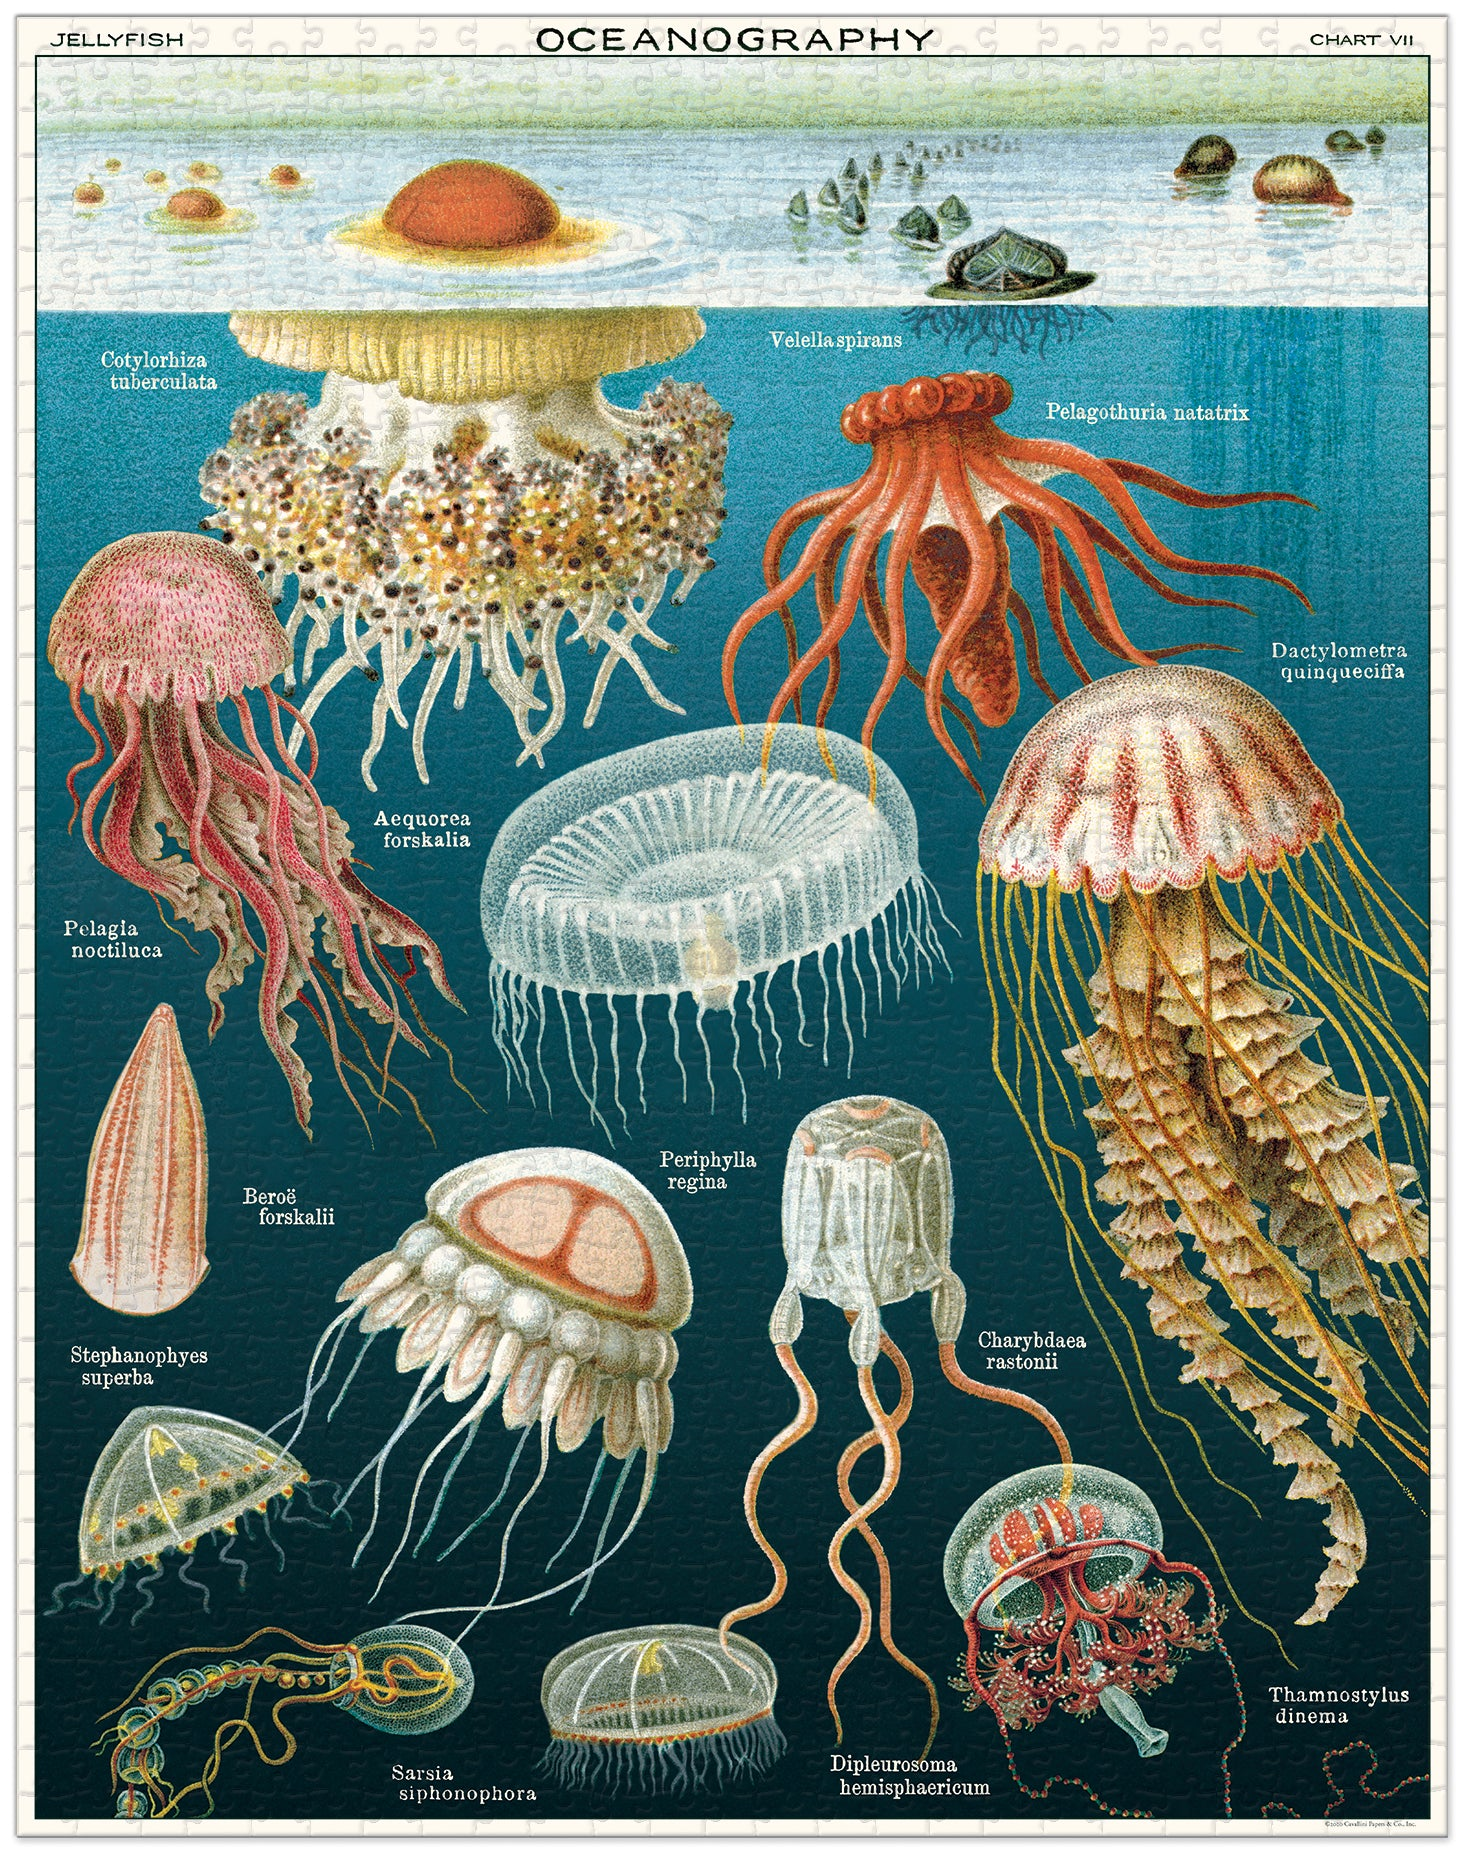 Jellyfish 1000 pc Cavallini Puzzle